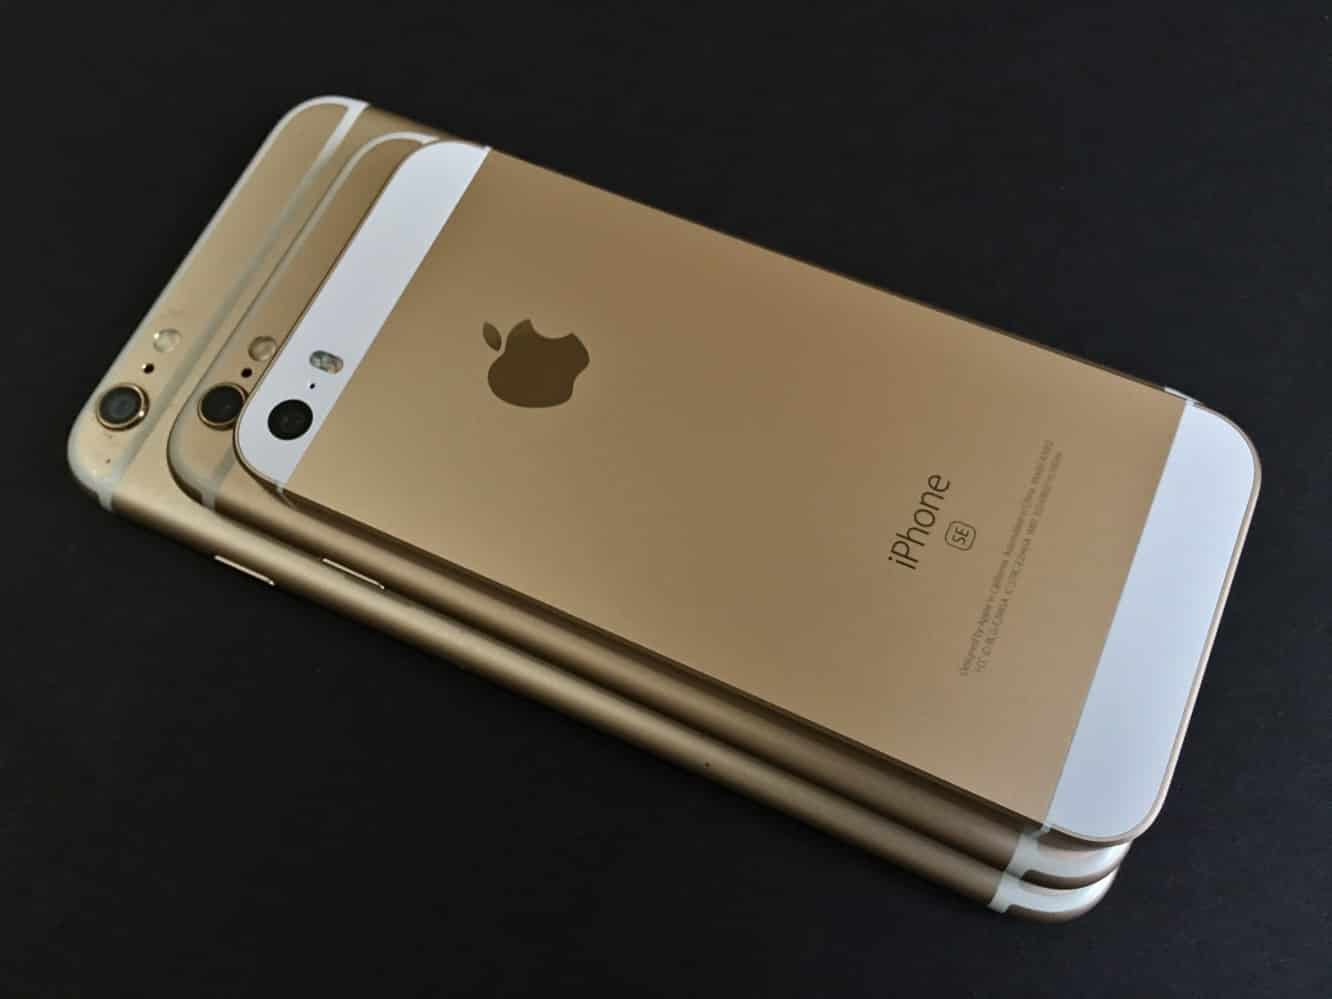 Apple allowing resellers to cut prices on older iPhones to make inroads in India